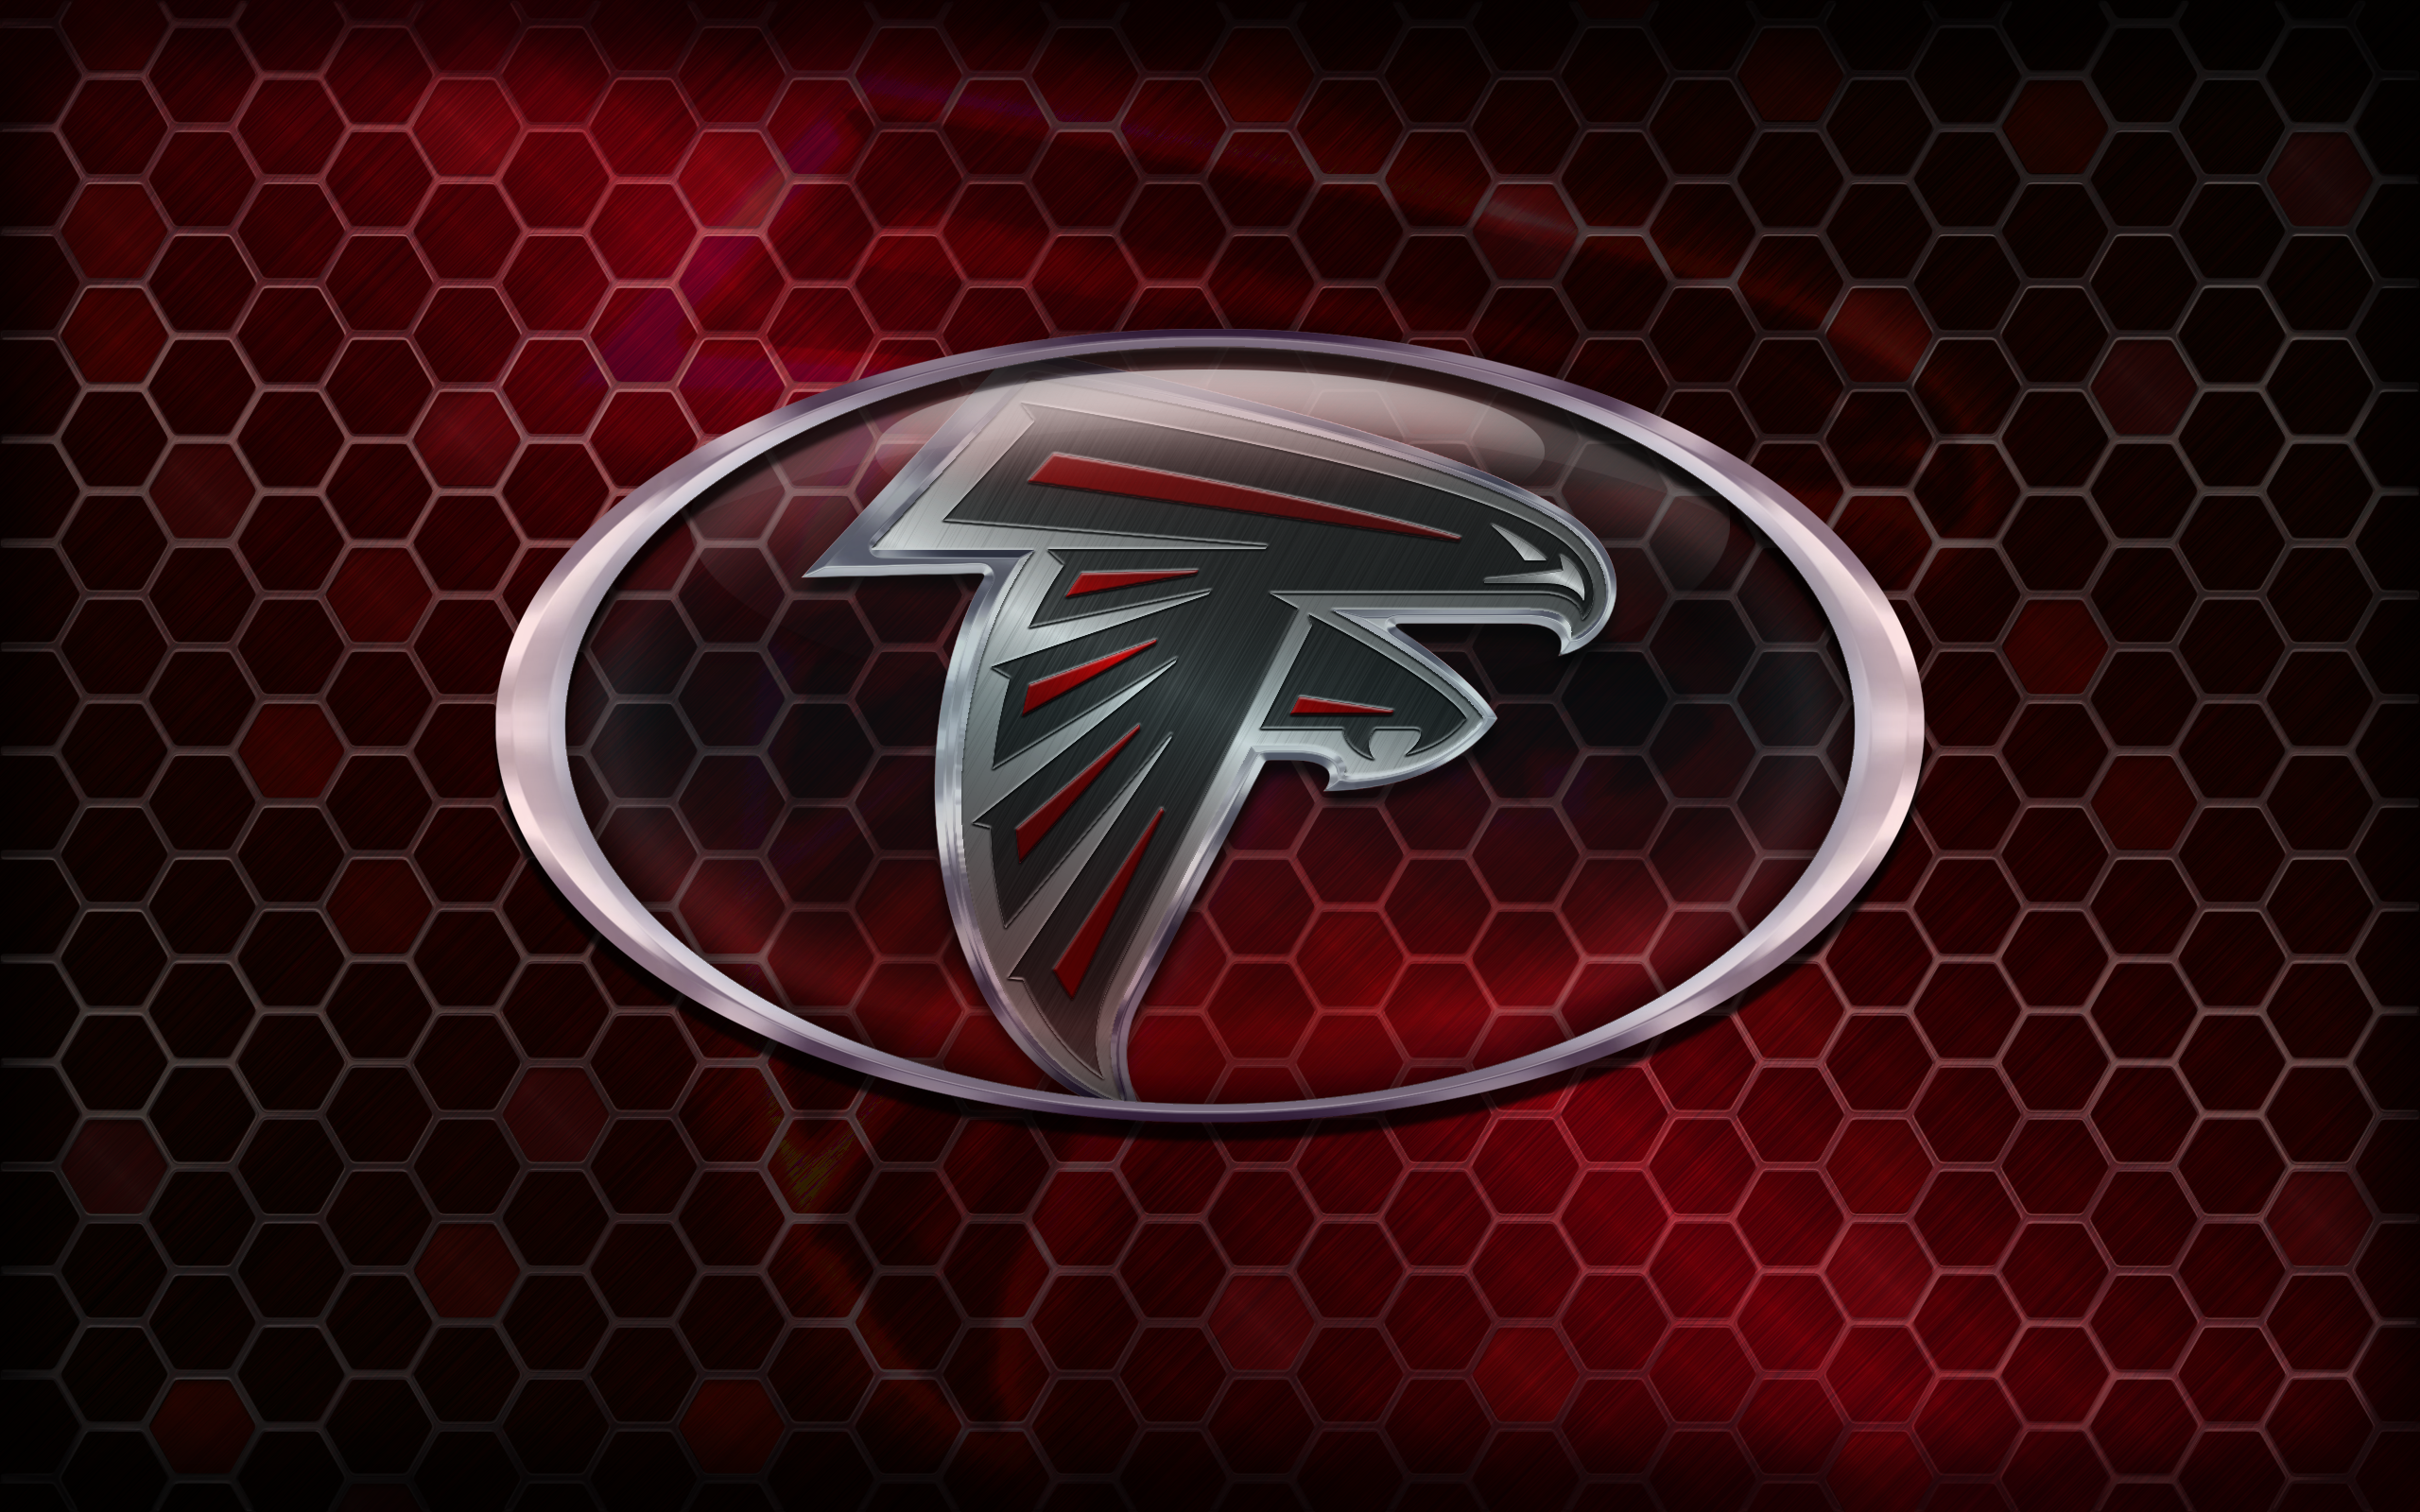 Atlanta Falcon Wallpapers Group 60: Atlanta Falcons 2012 Wallpaper By EaglezRock On DeviantArt